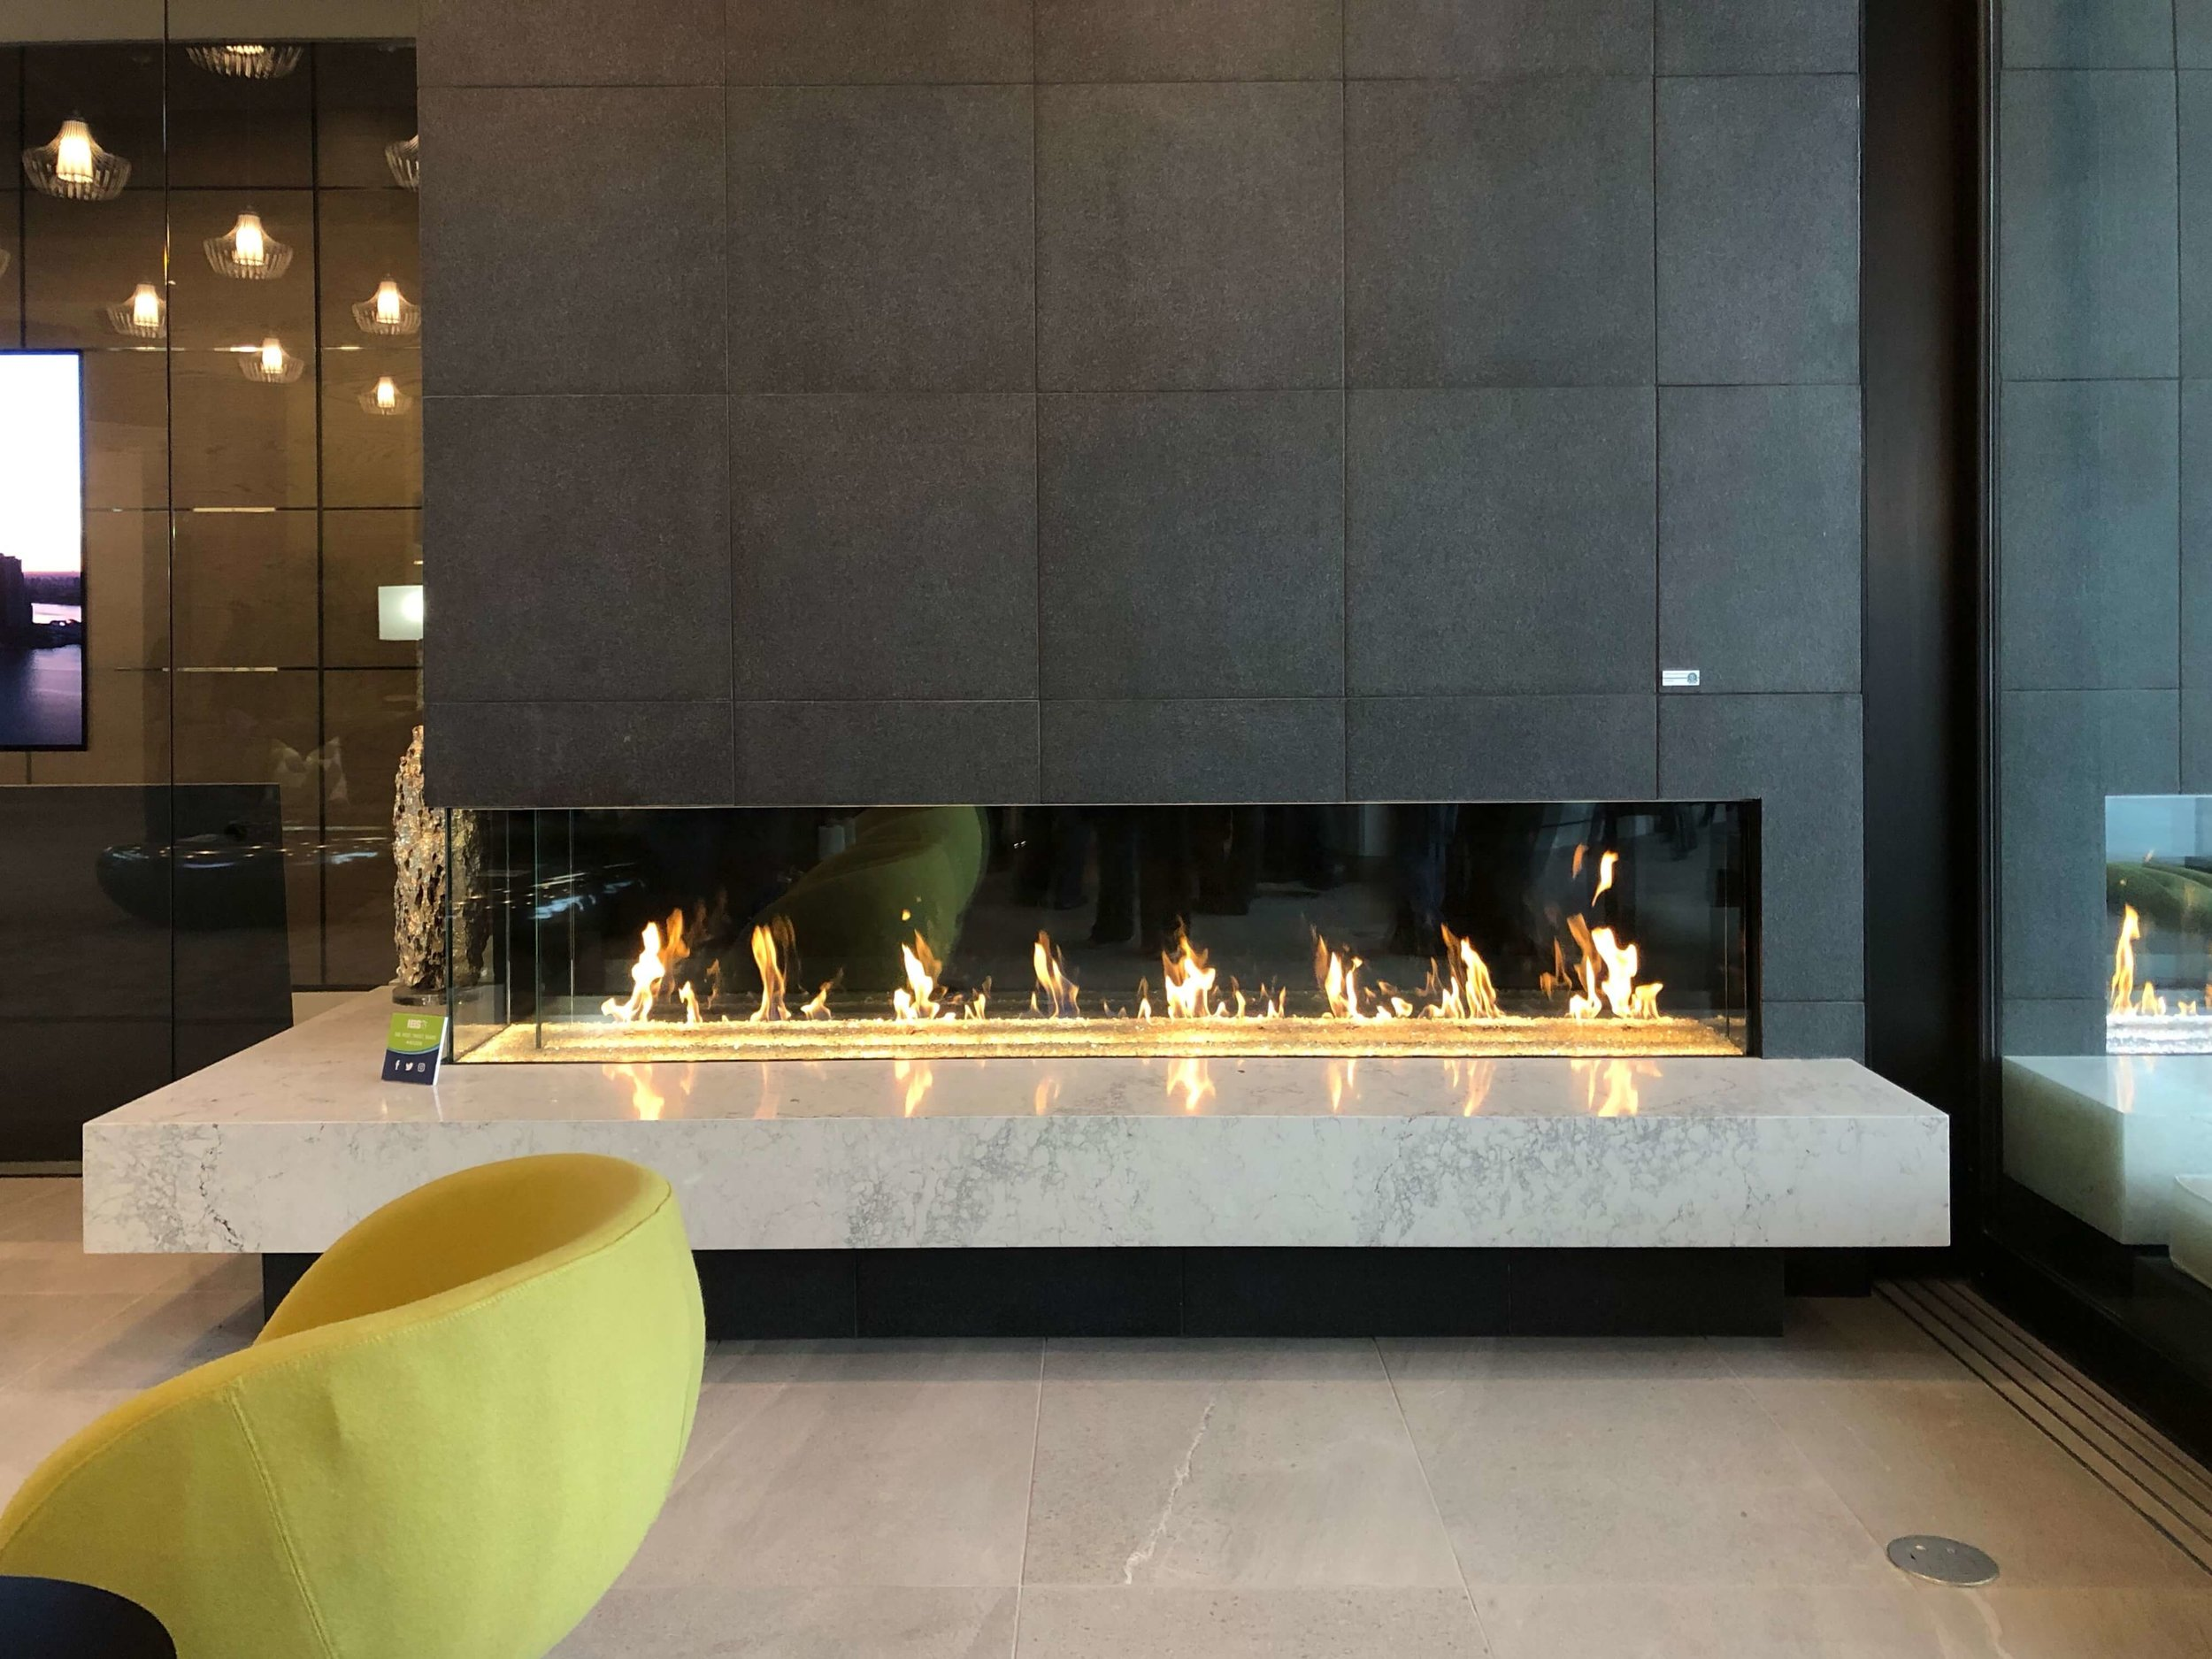 Linear fireplace, The New American Home Tour 2019 | Designed and built by Sun West Custom Homes #contemporaryhome #fireplace